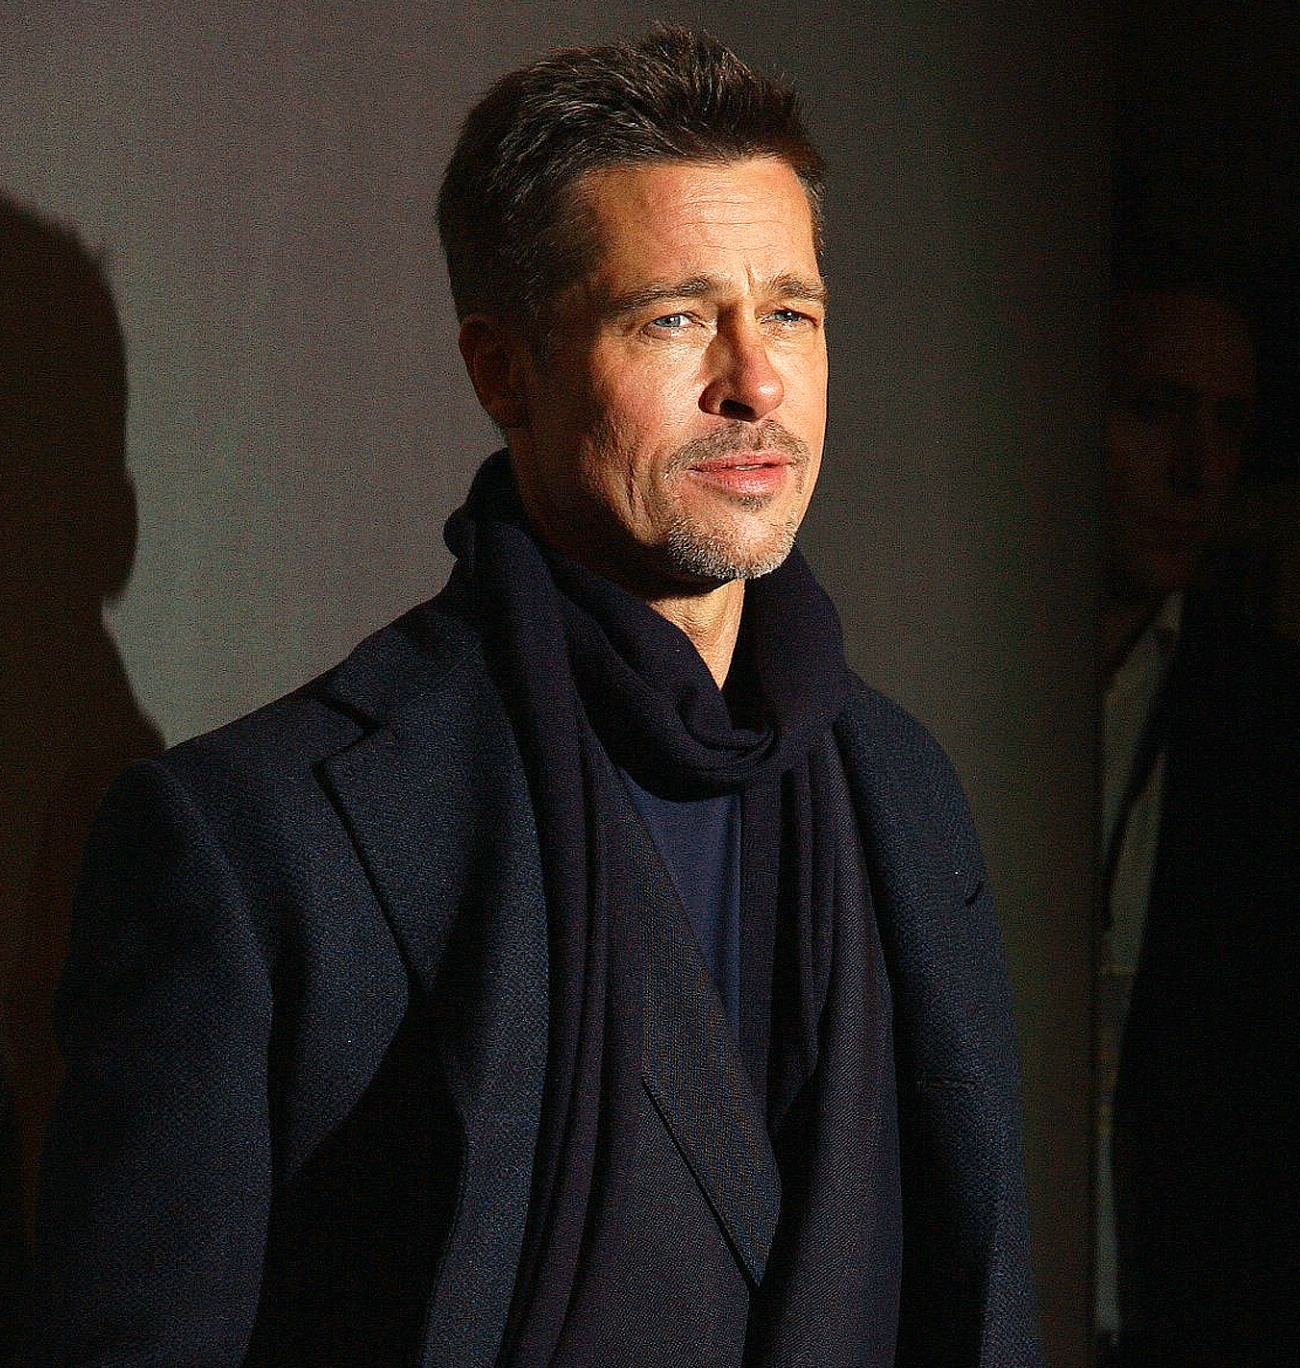 Two years later, Brad Pitt is still trying to undercover-smear Angelina Jolie